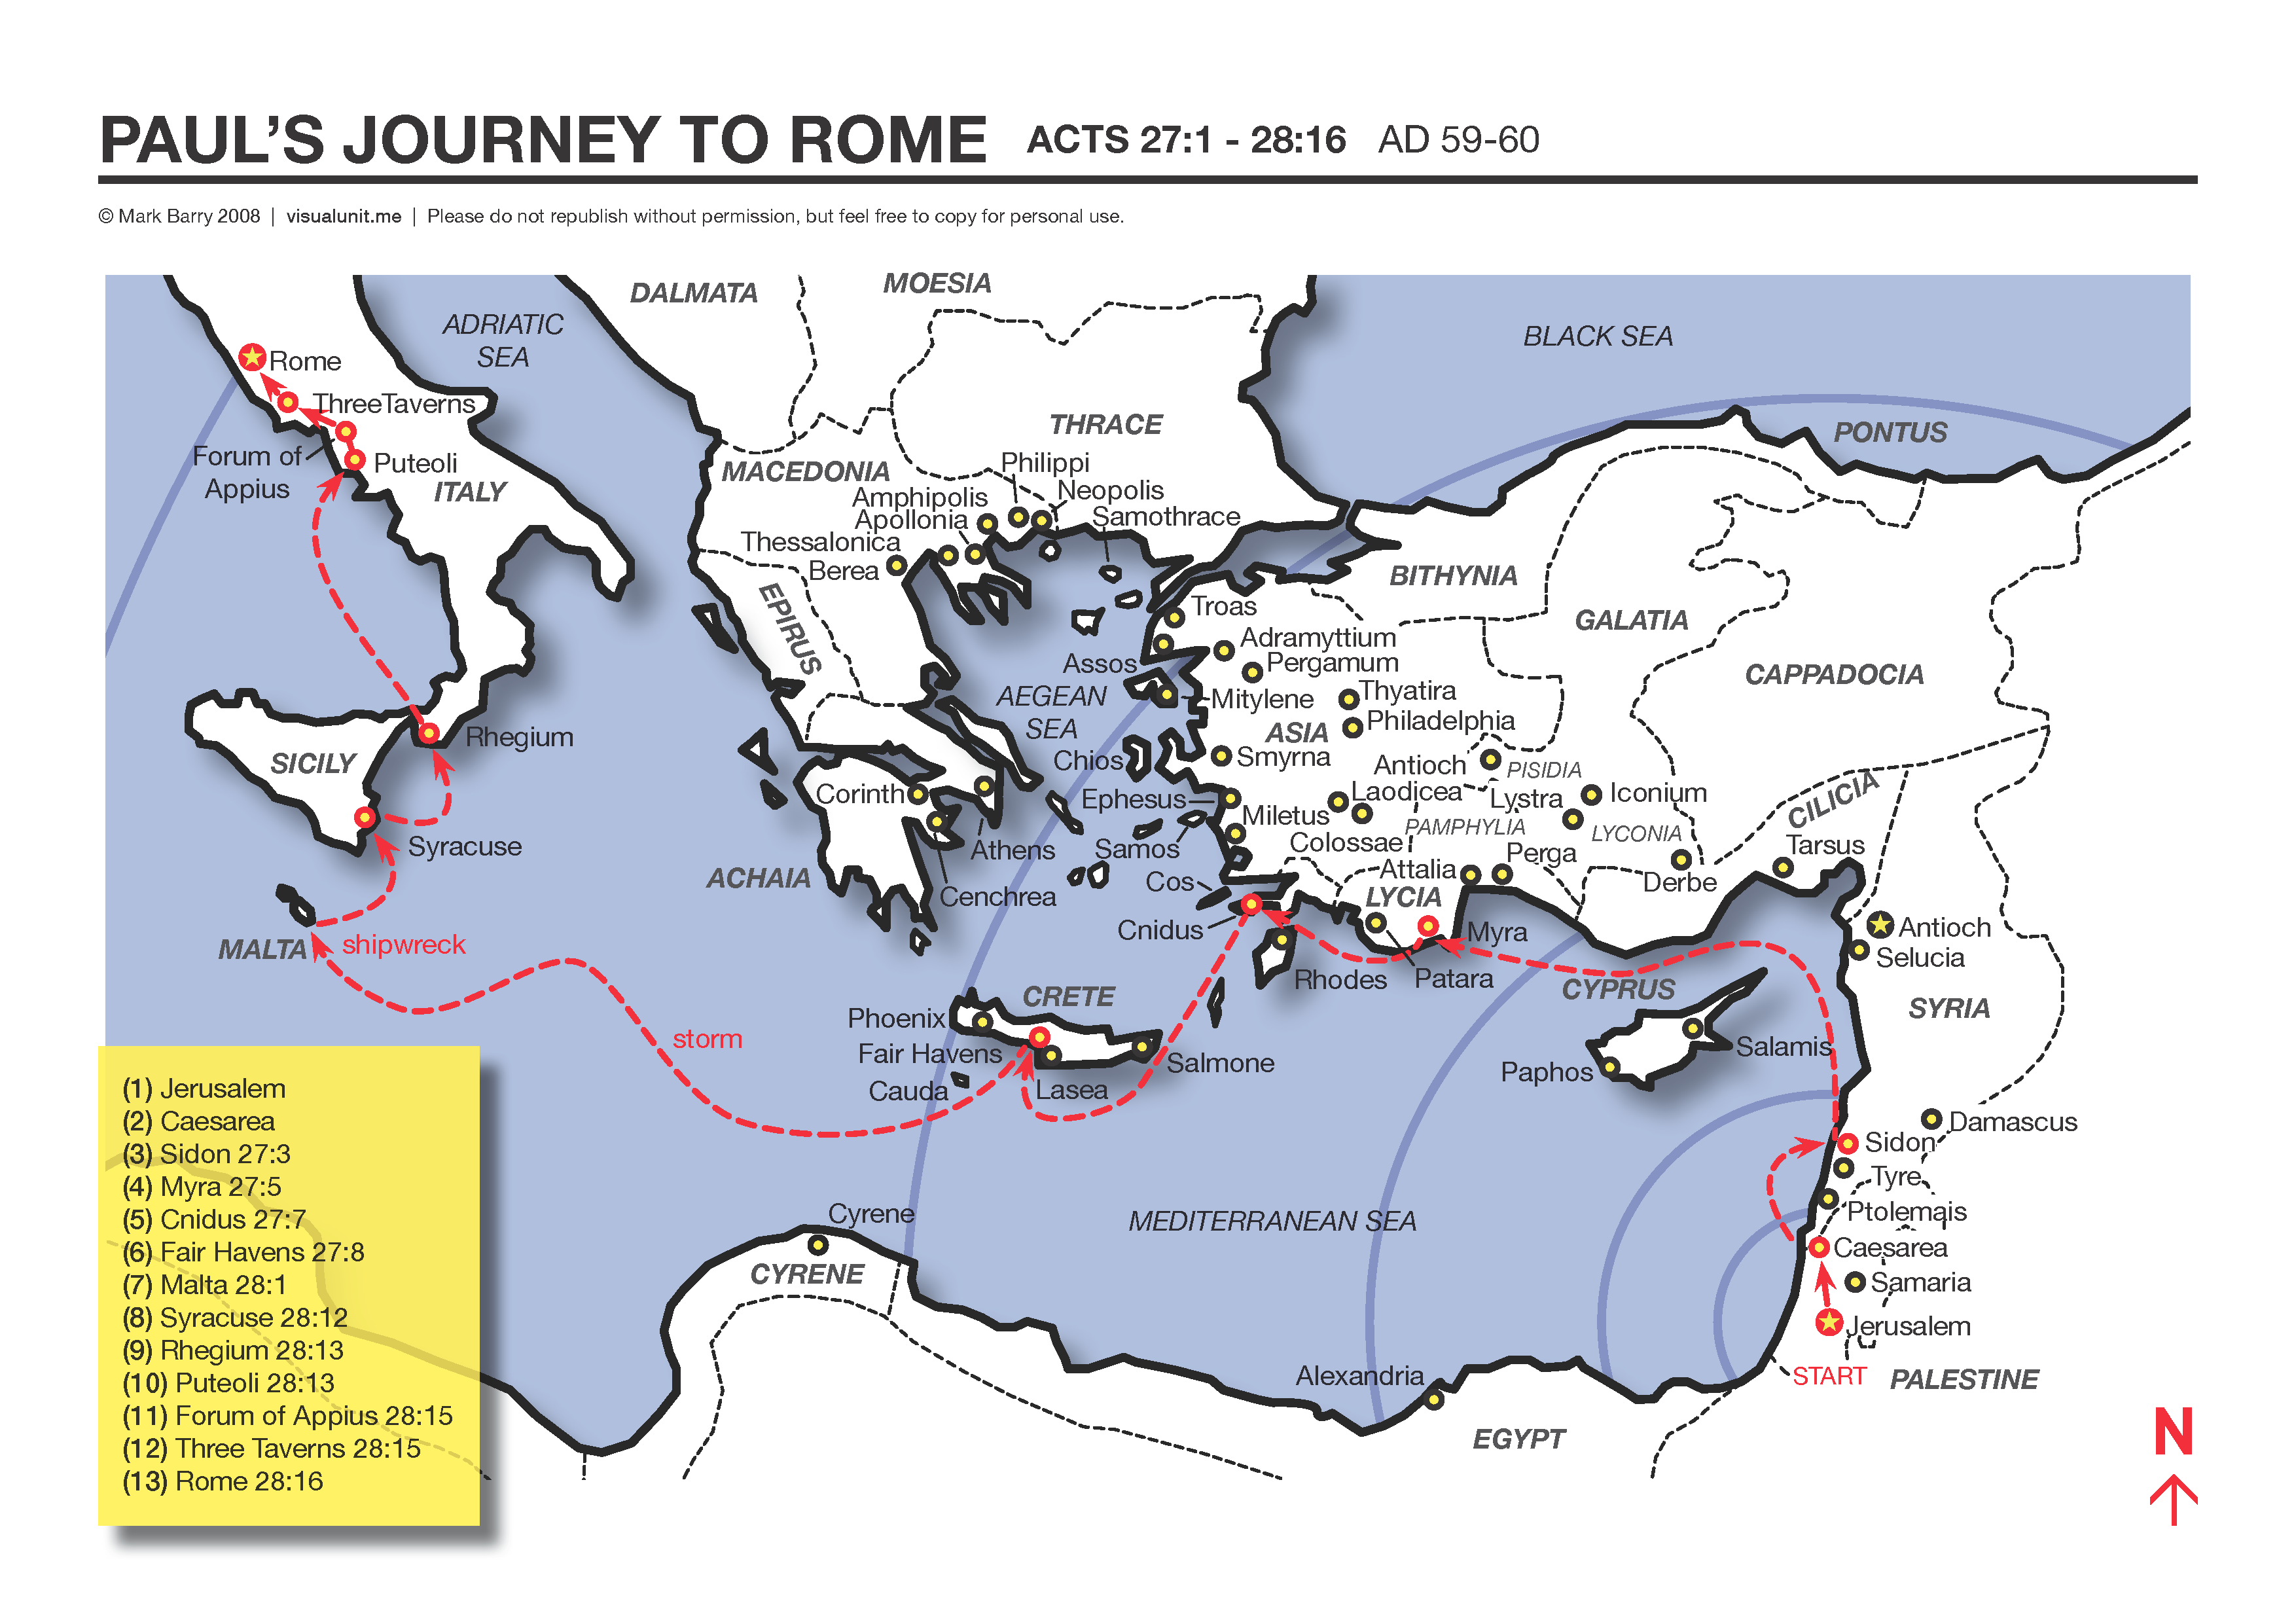 A map showing the apostle pauls journey to rome to face caesar a map showing the apostle pauls journey to rome to face caesar acts 271 2816 ad 59 60 pdf version 330 kb gumiabroncs Image collections